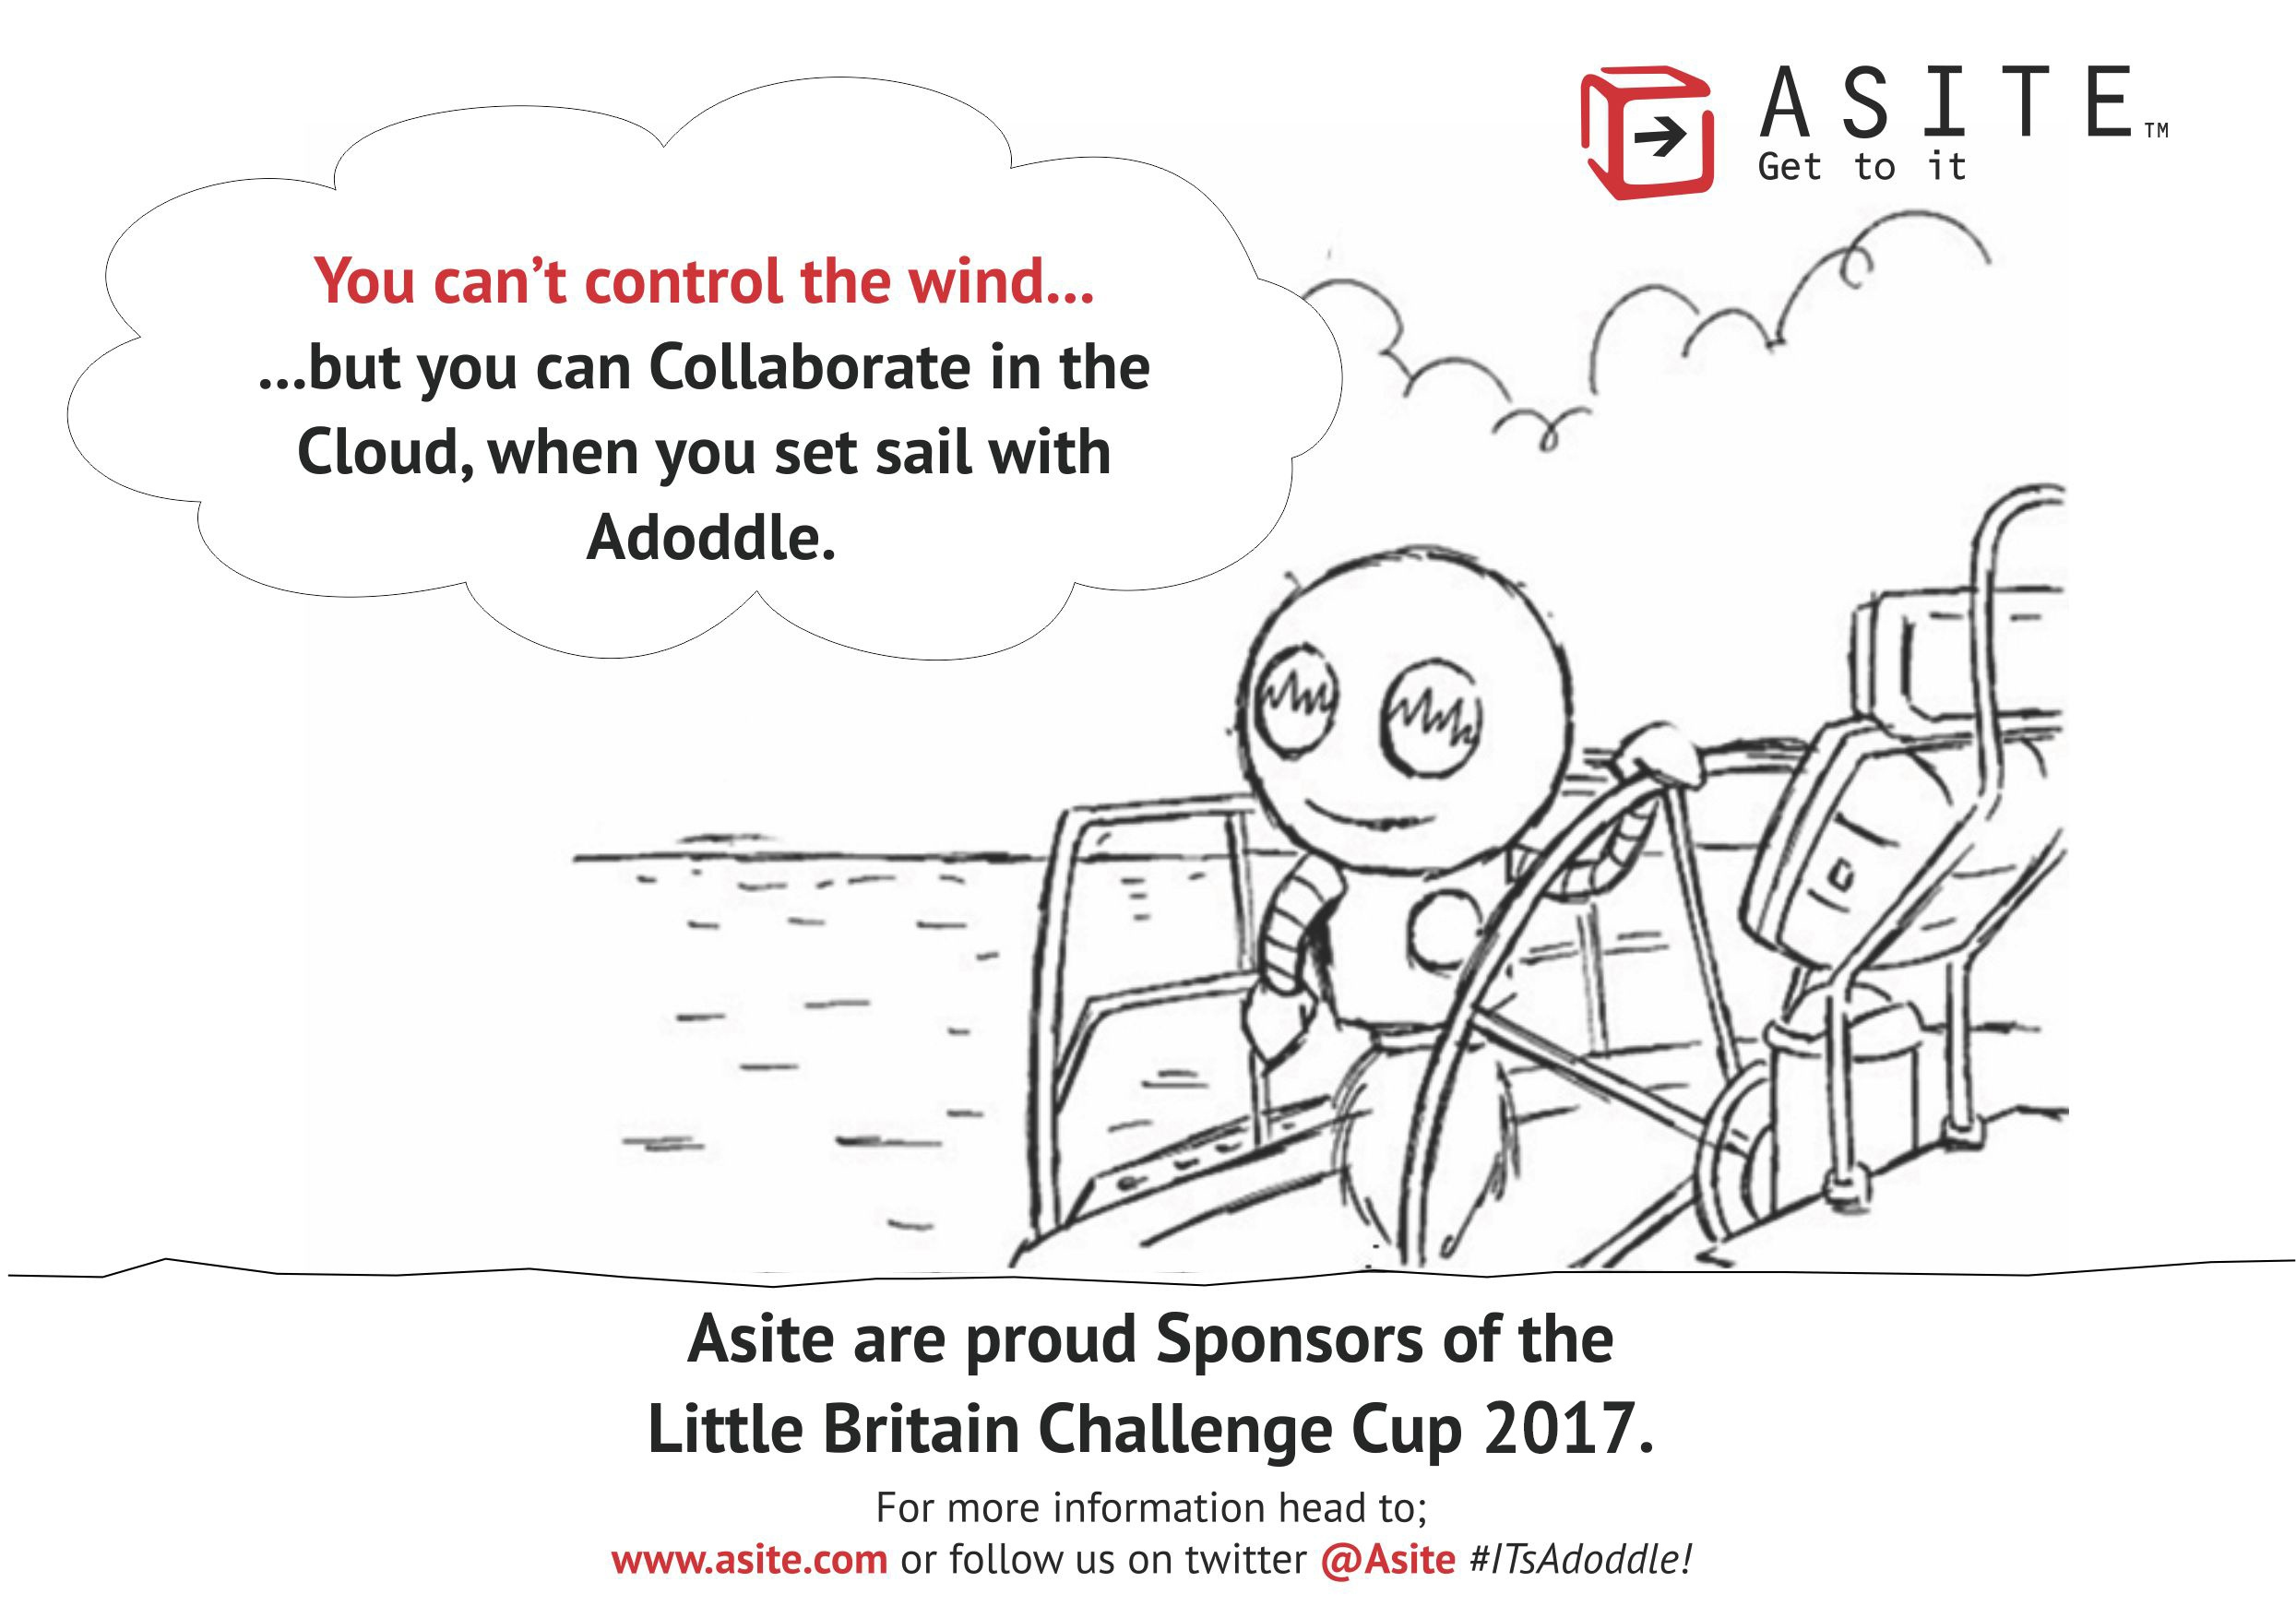 Asite are proud to be the Gold Sponsors of the 2017 Little Britain Challenge Cup for its 30th Birthday in Cowes, Isle of Wight, UK 15th - 16th September!